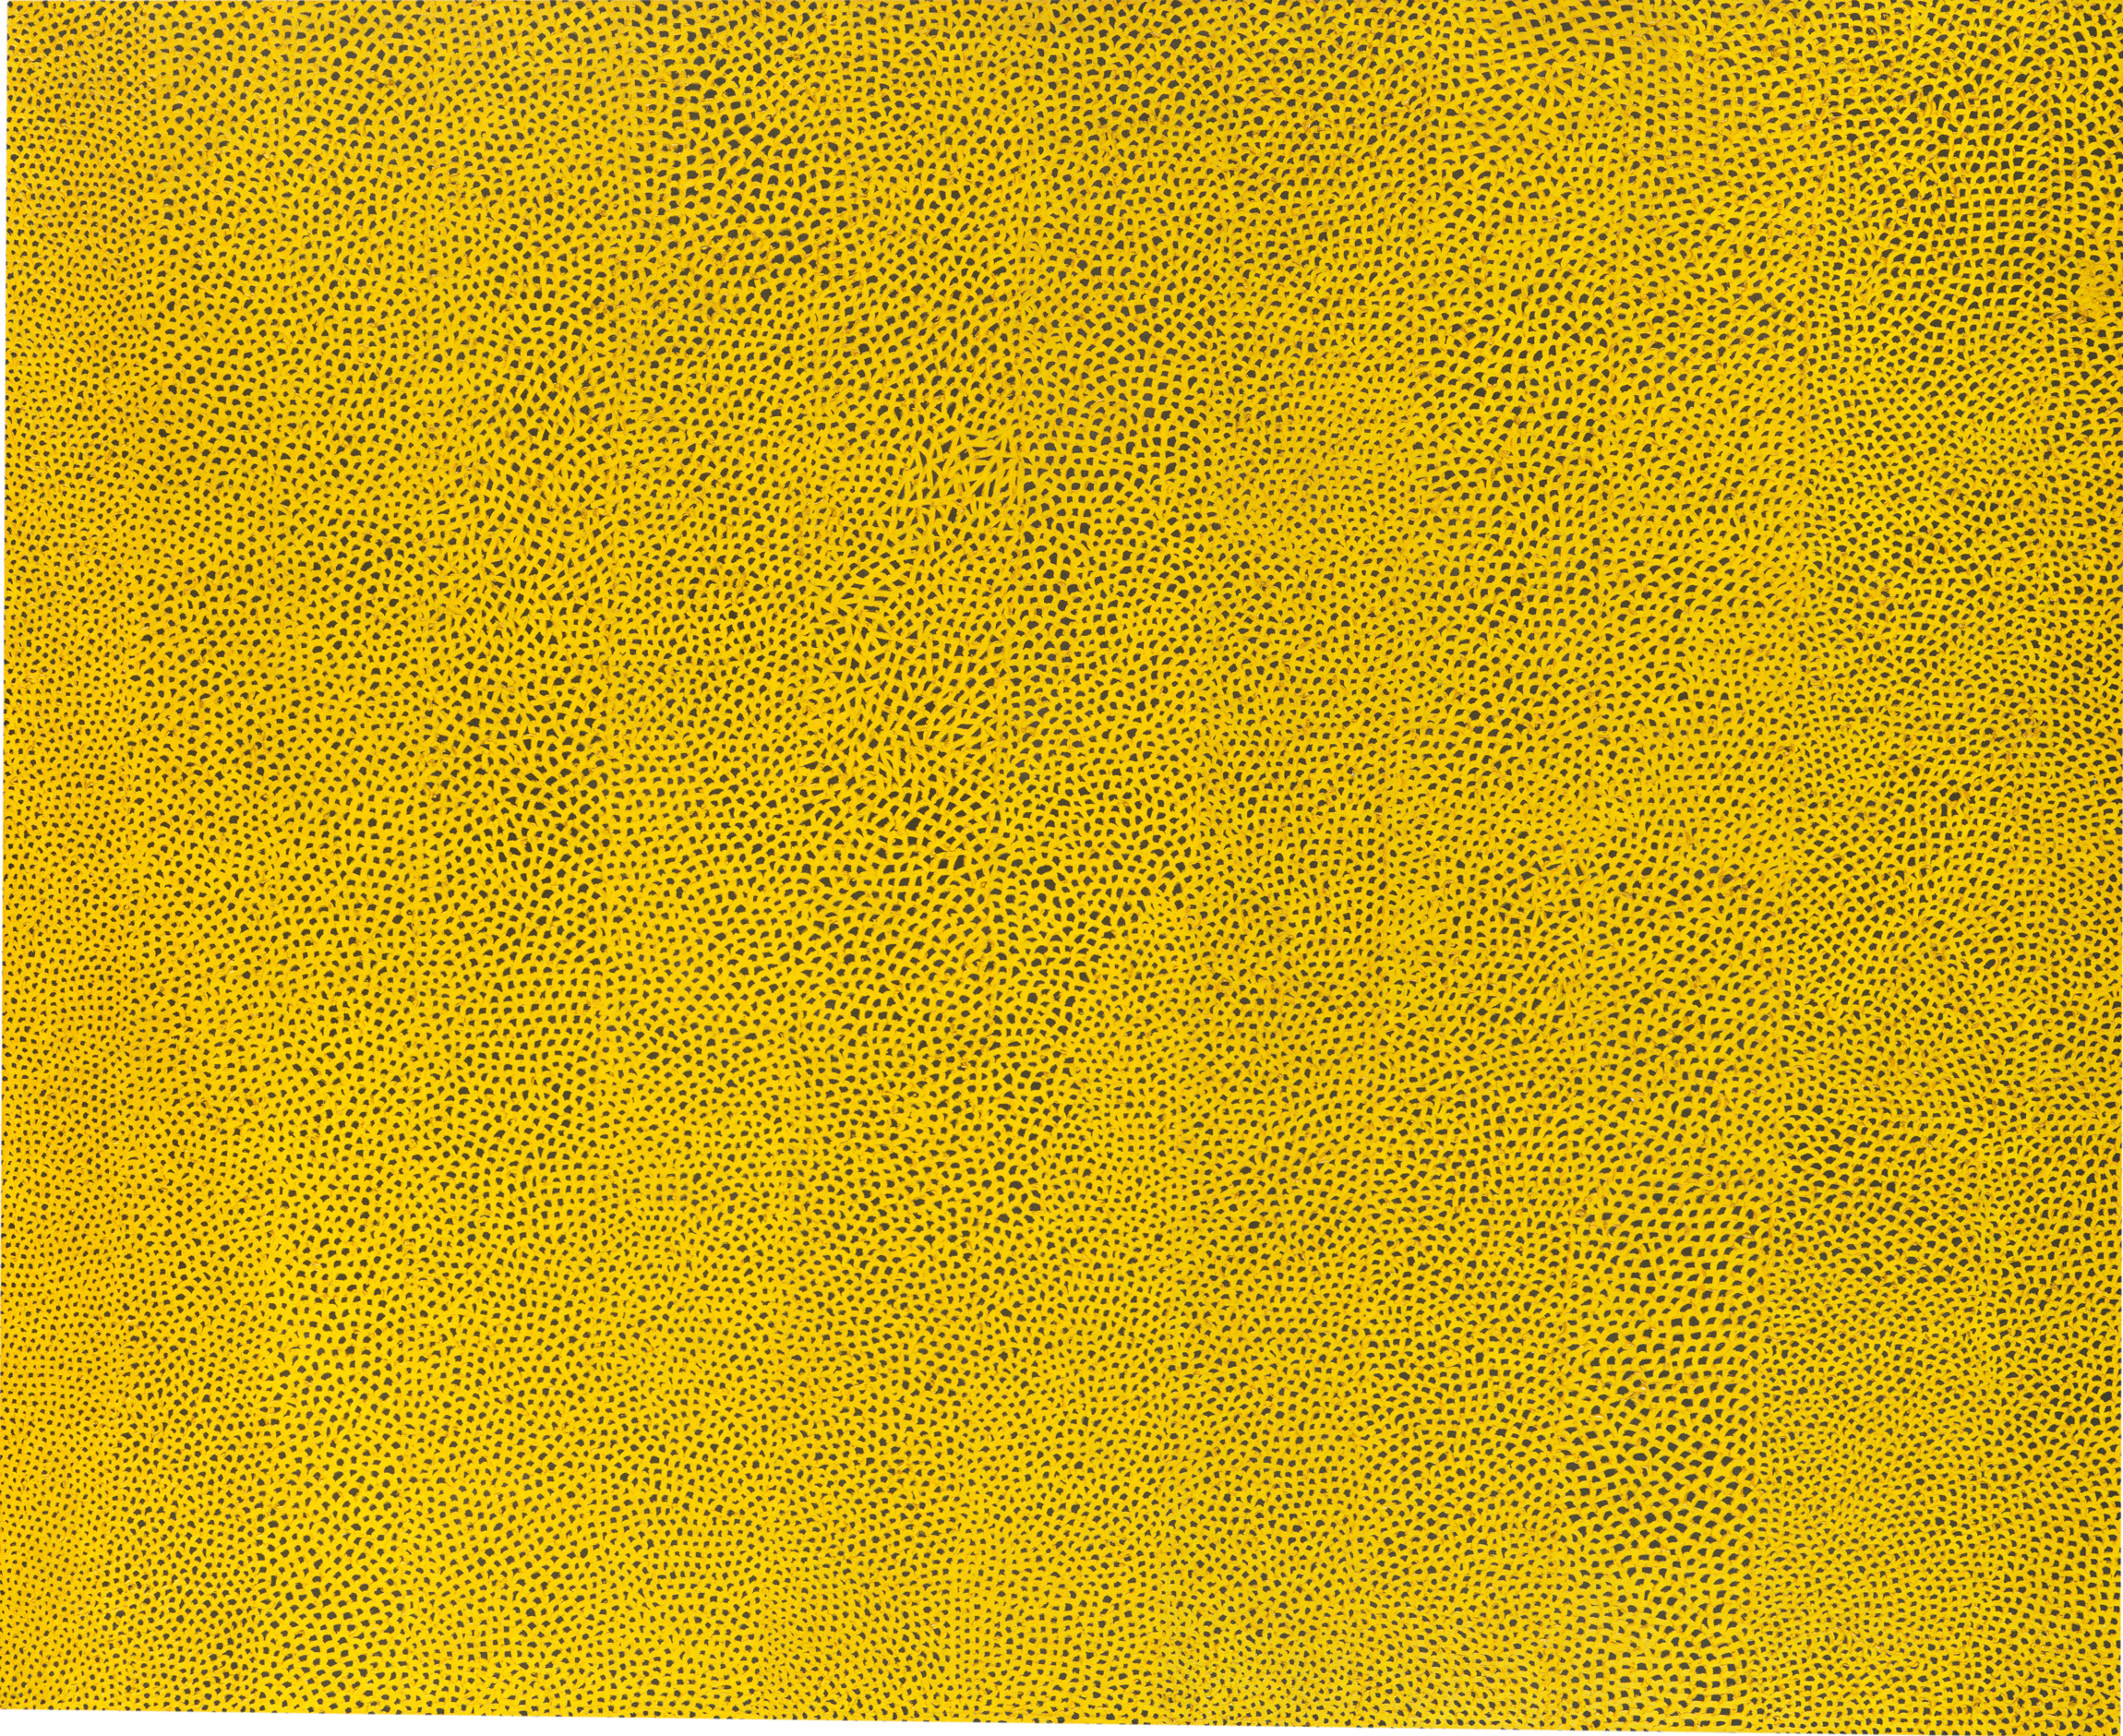 Infinity Nets Yellow , 1960. Oil paint on canvas, 94 1/2 x 116 in. (240 x 294.6 cm)  National Gallery of Art, Washington. Gift of the Collectors Committee (2002.37.1). © Yayoi Kusama